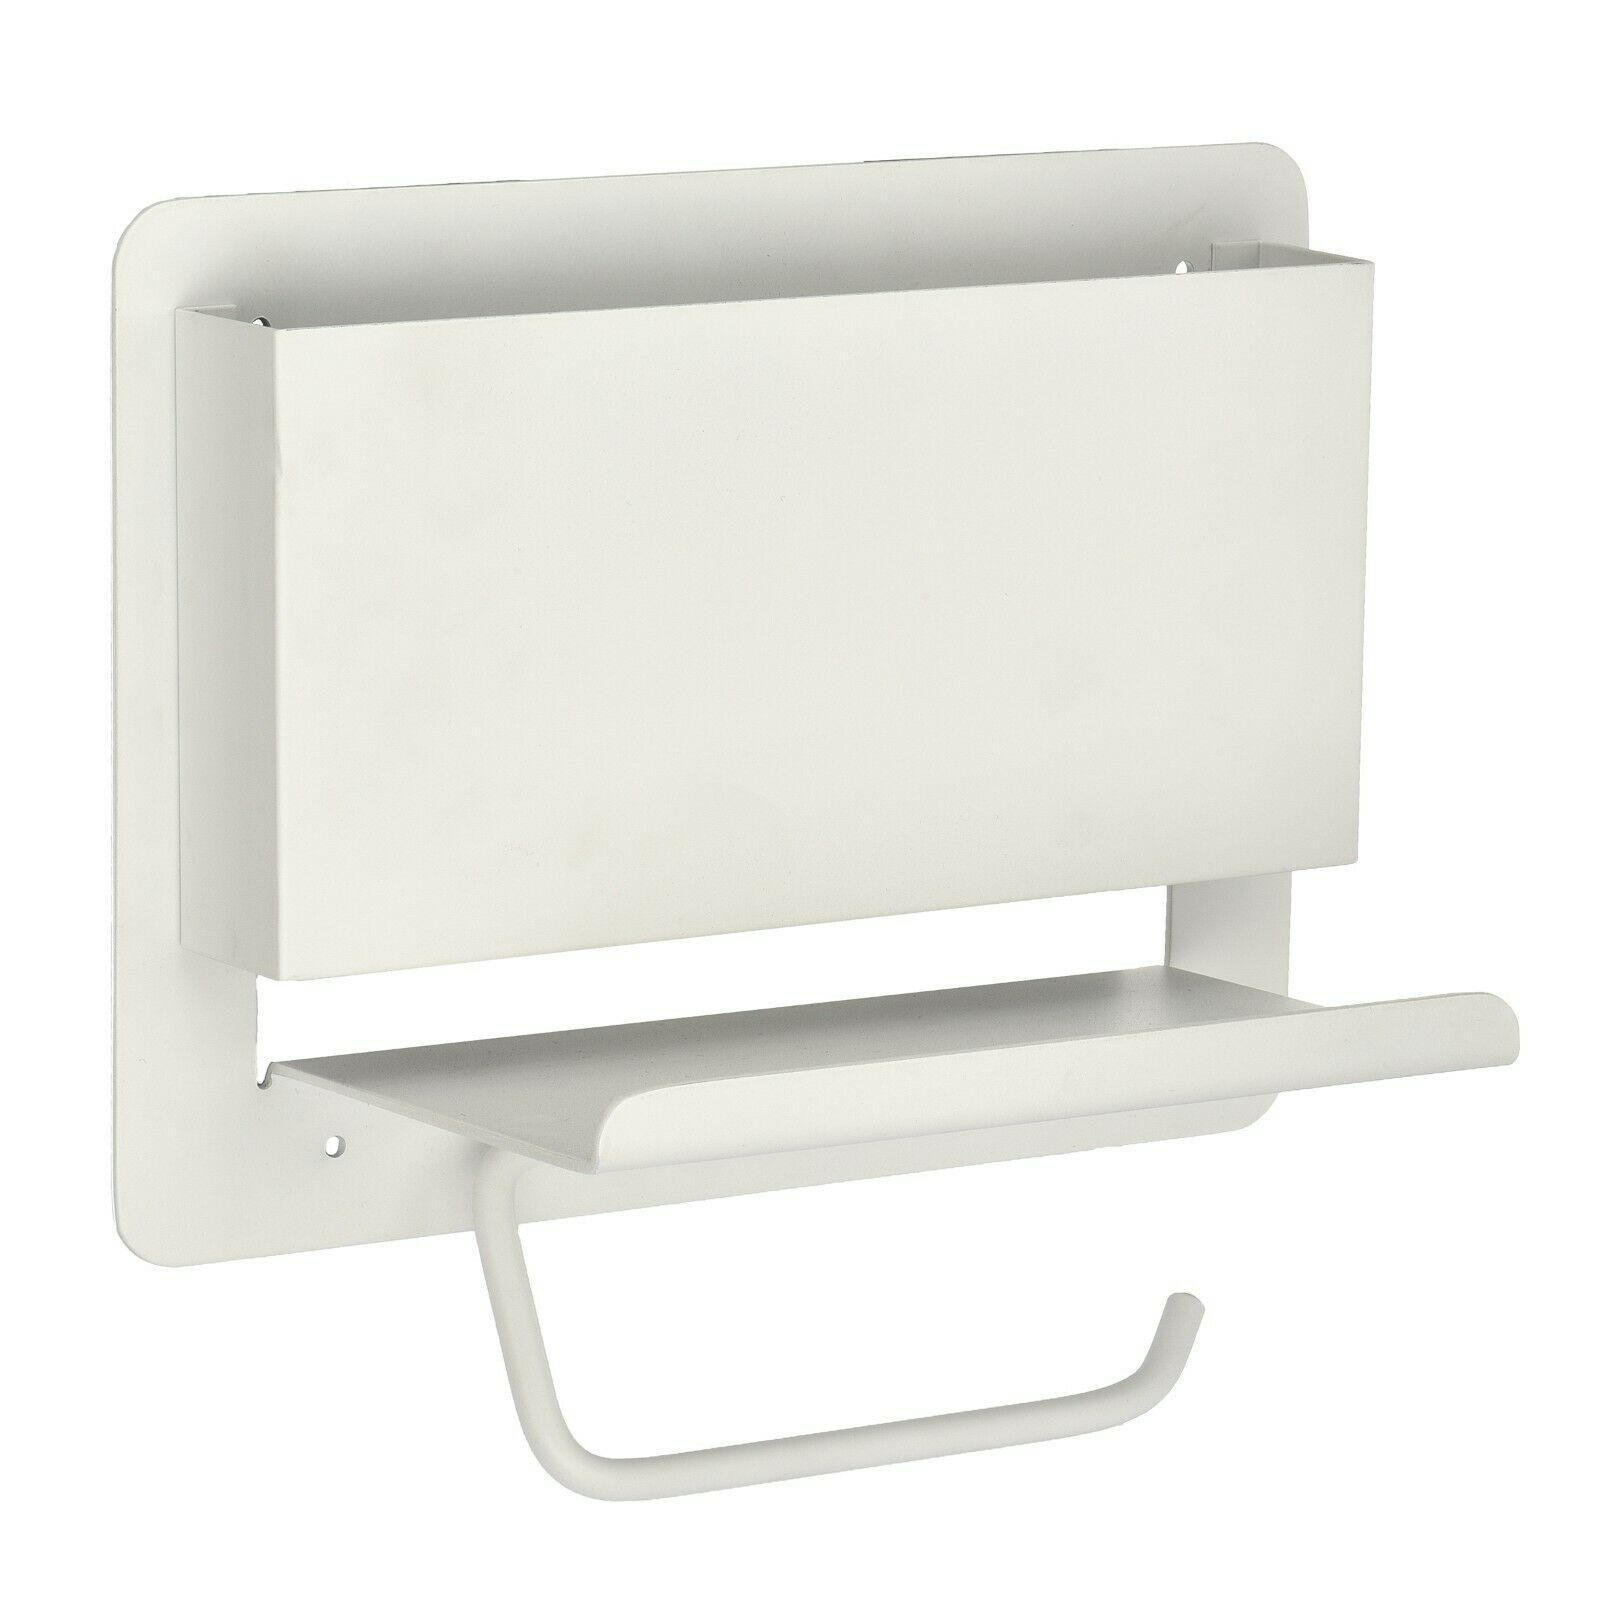 Details About Adirhome White Single Post Toilet Paper Holder With Magazine Rack And Shelf